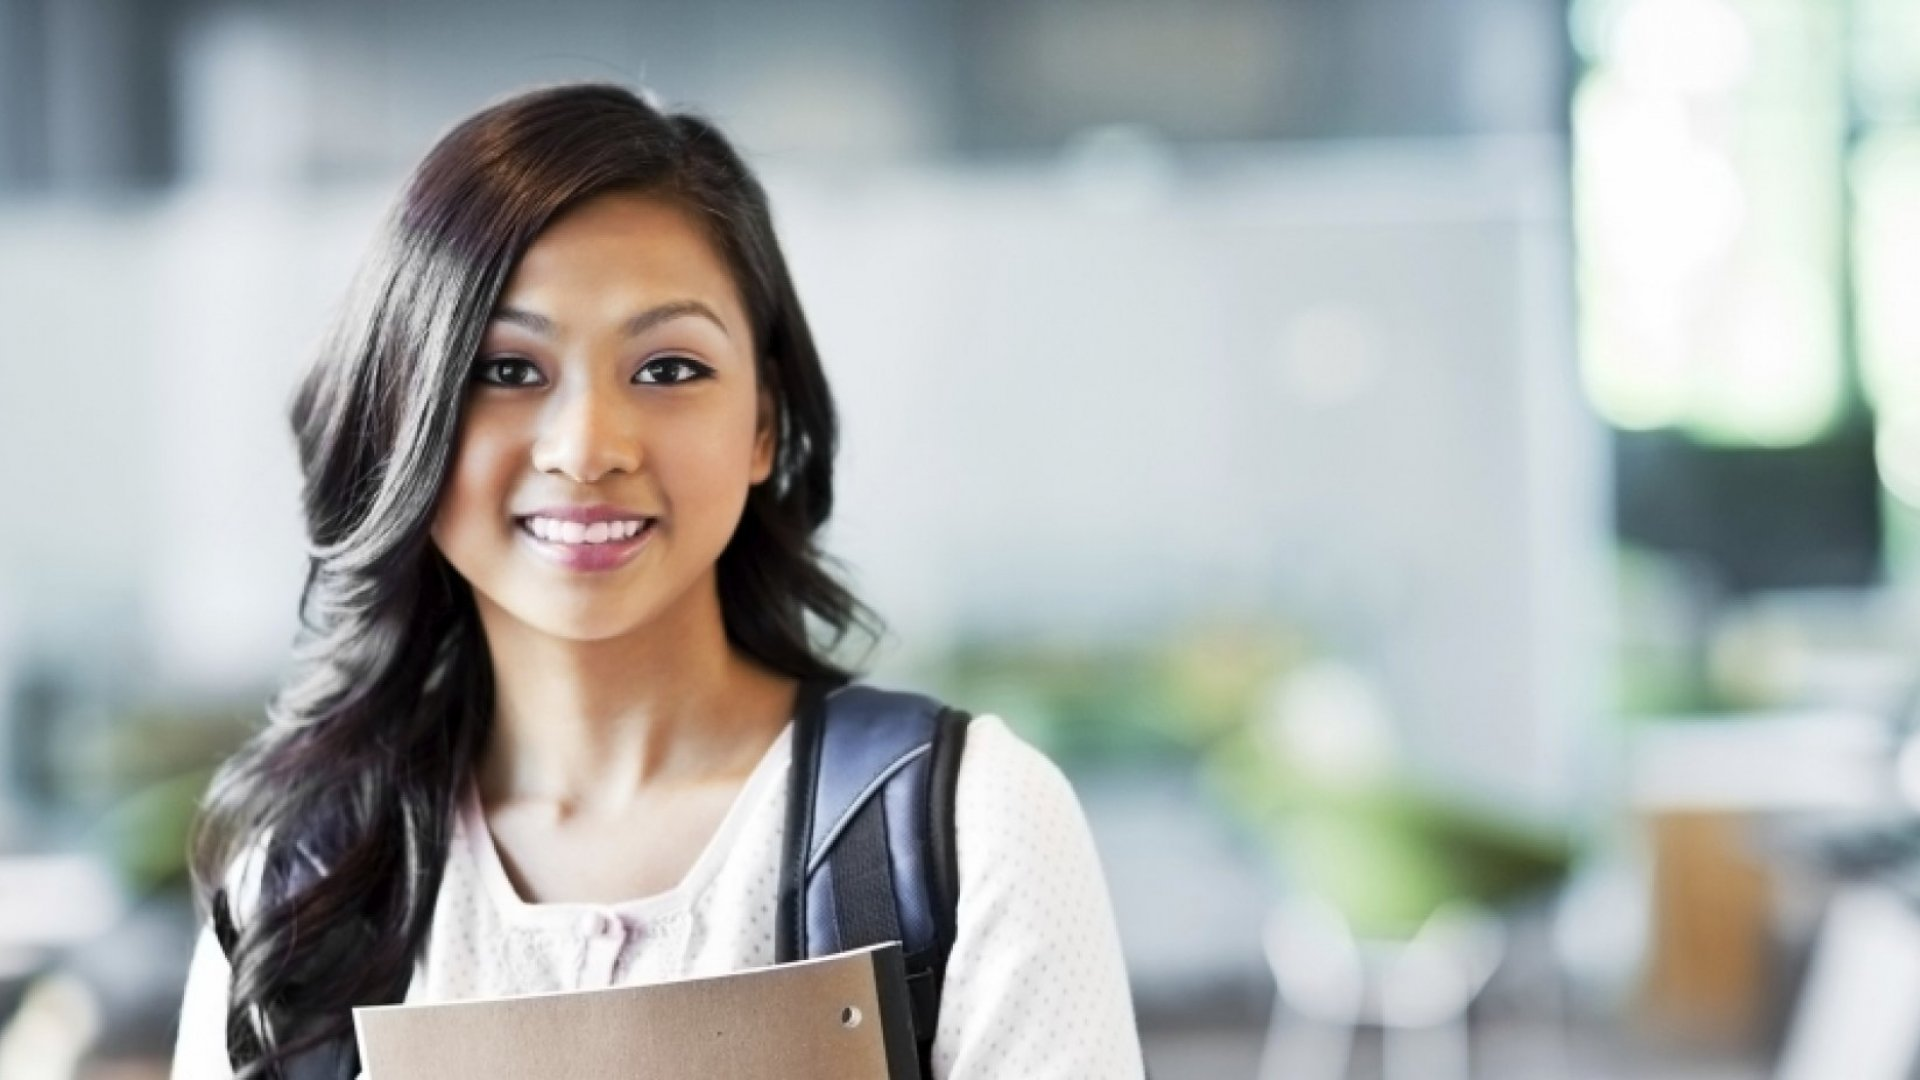 Will the Rising Cost of College Produce More Entrepreneurs?